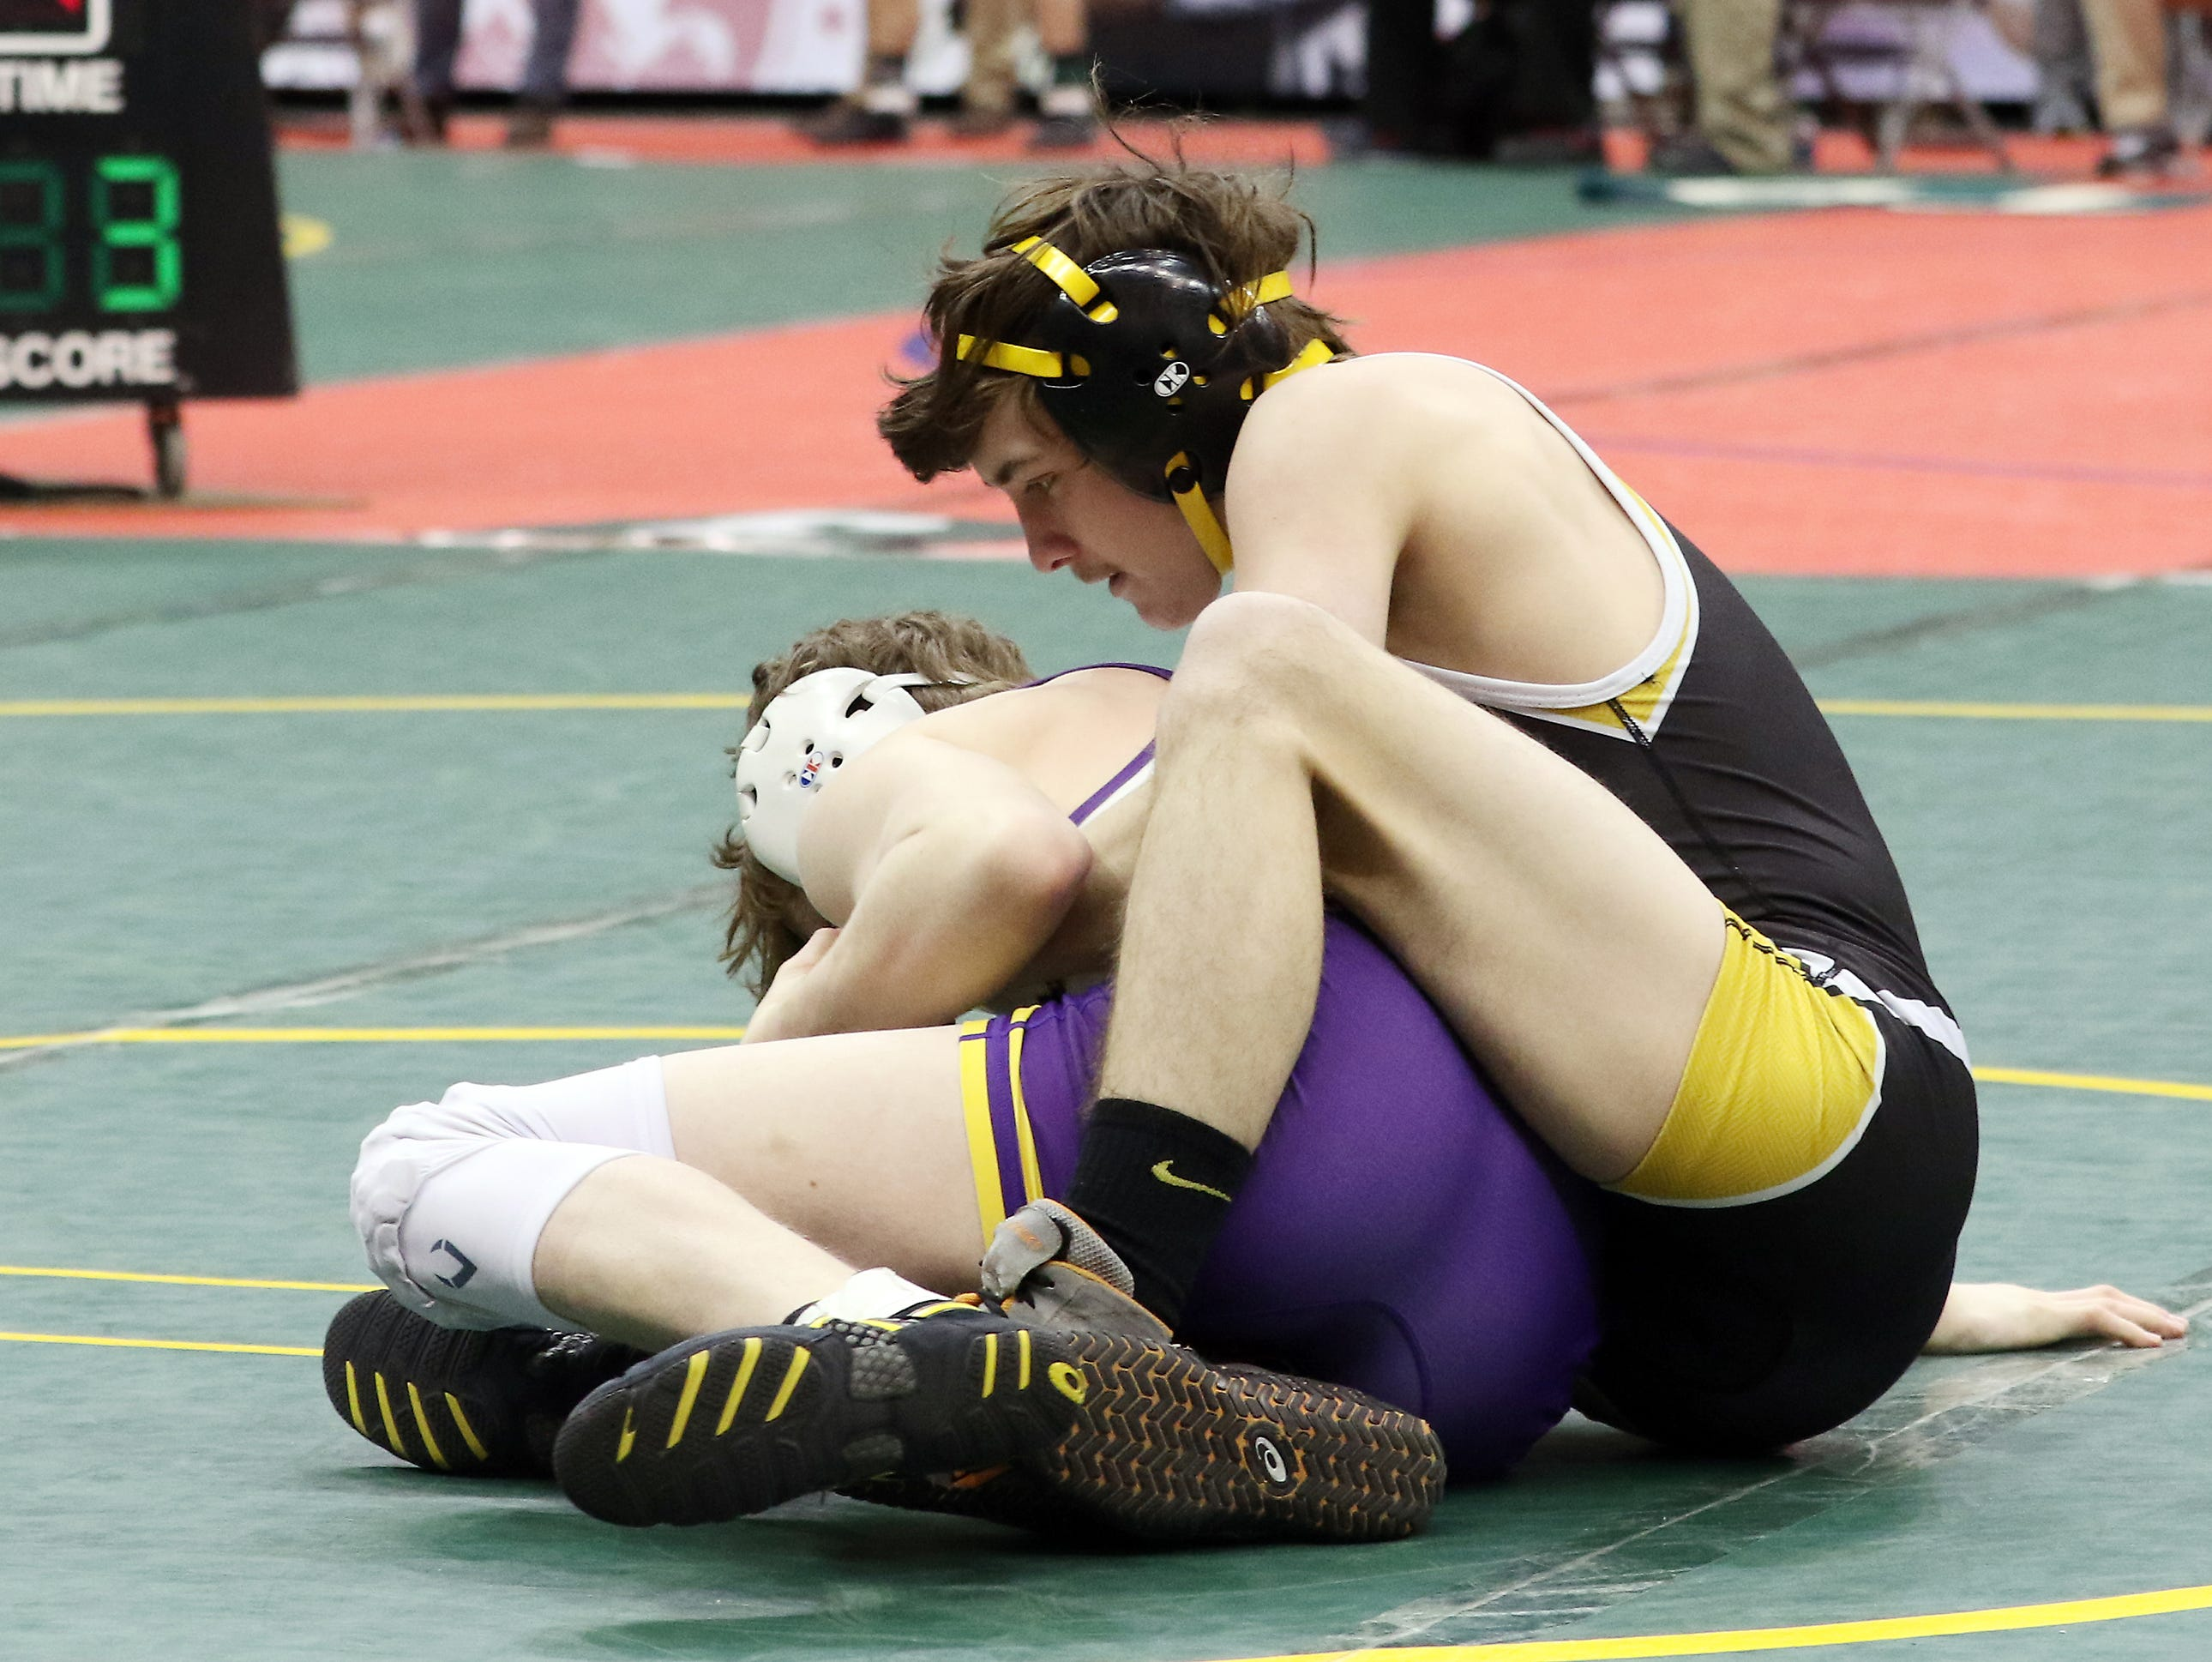 Tri-Valley's Sky Wisecarver wrestles Avon's Cael Saxton in the 106 pound consolations at the Division I state wrestling tournament on Friday.